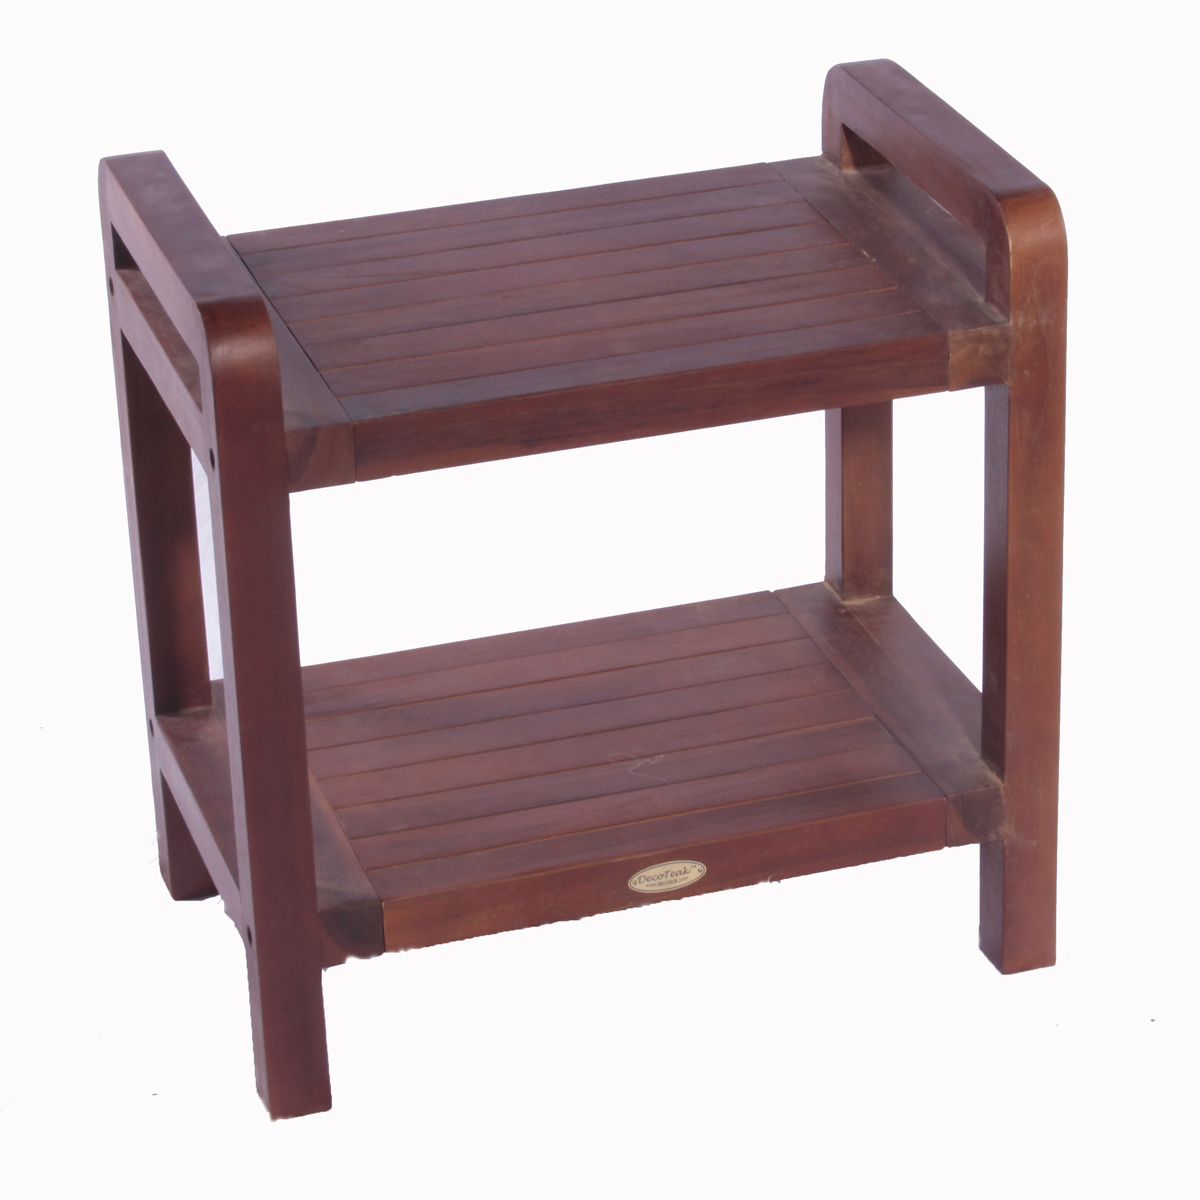 "Decoteak DT108 Classic 24"" Ergonomic Teak Shower Stool with Liftaid Arms and Shelf"